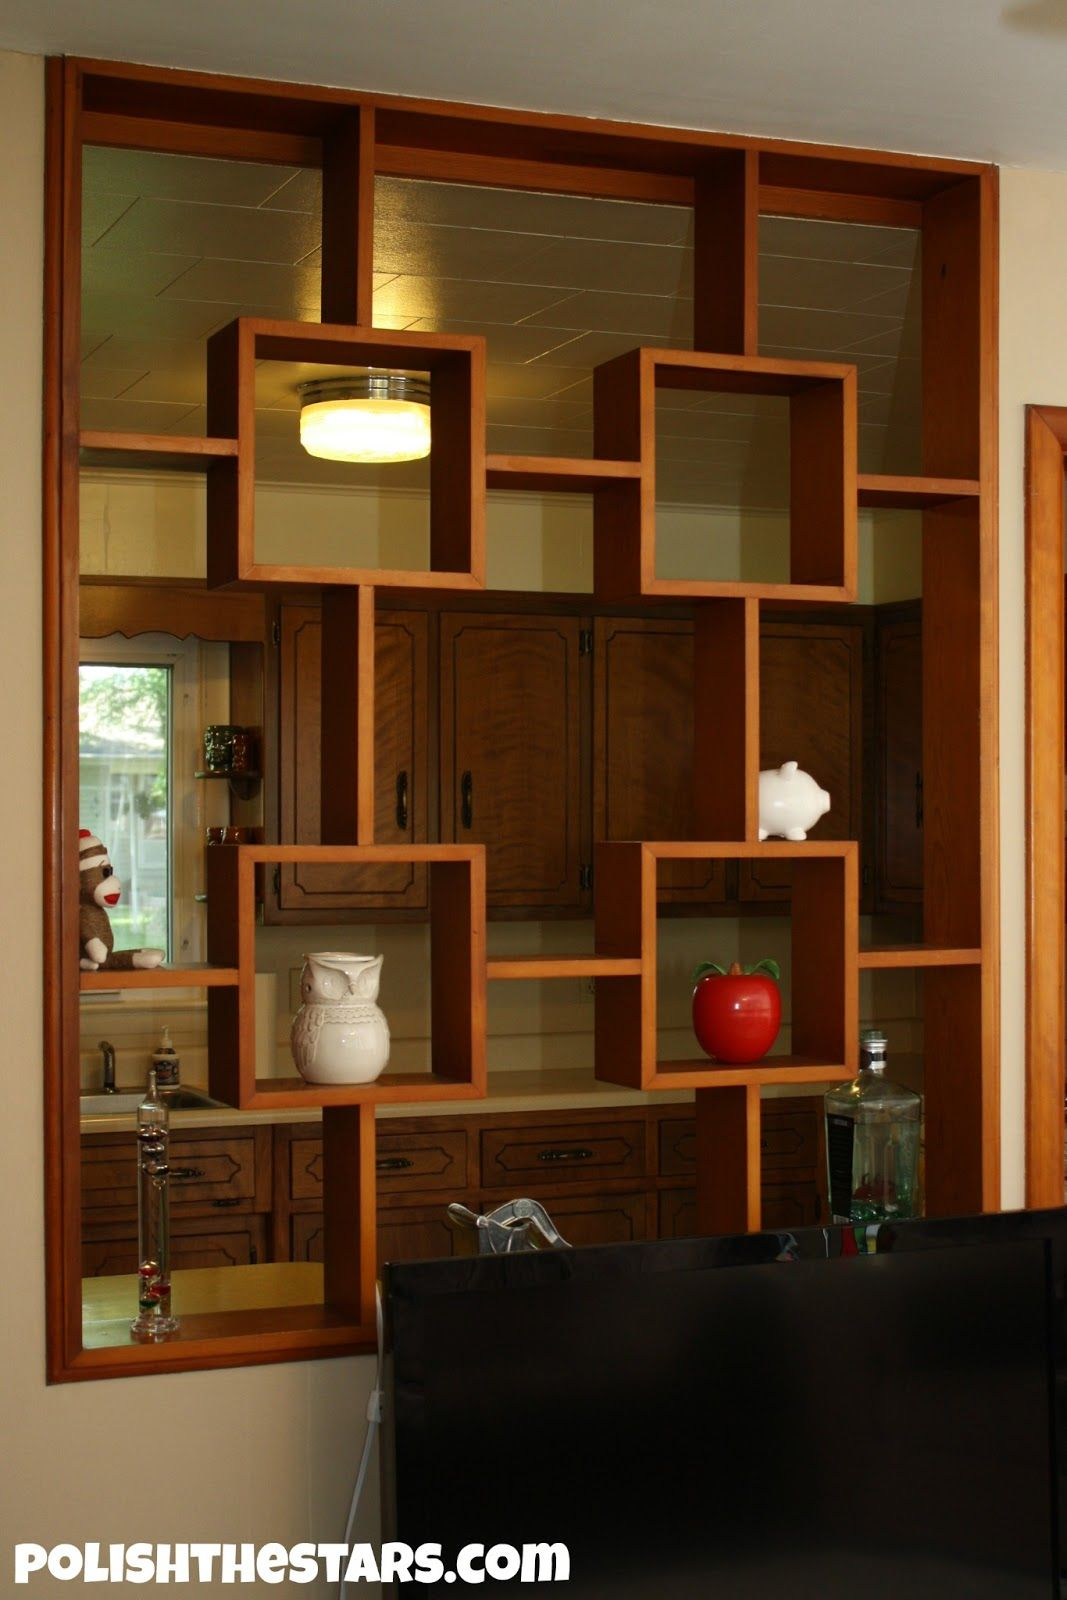 Fascinating Half Wall Room Divider For Interior Design ...